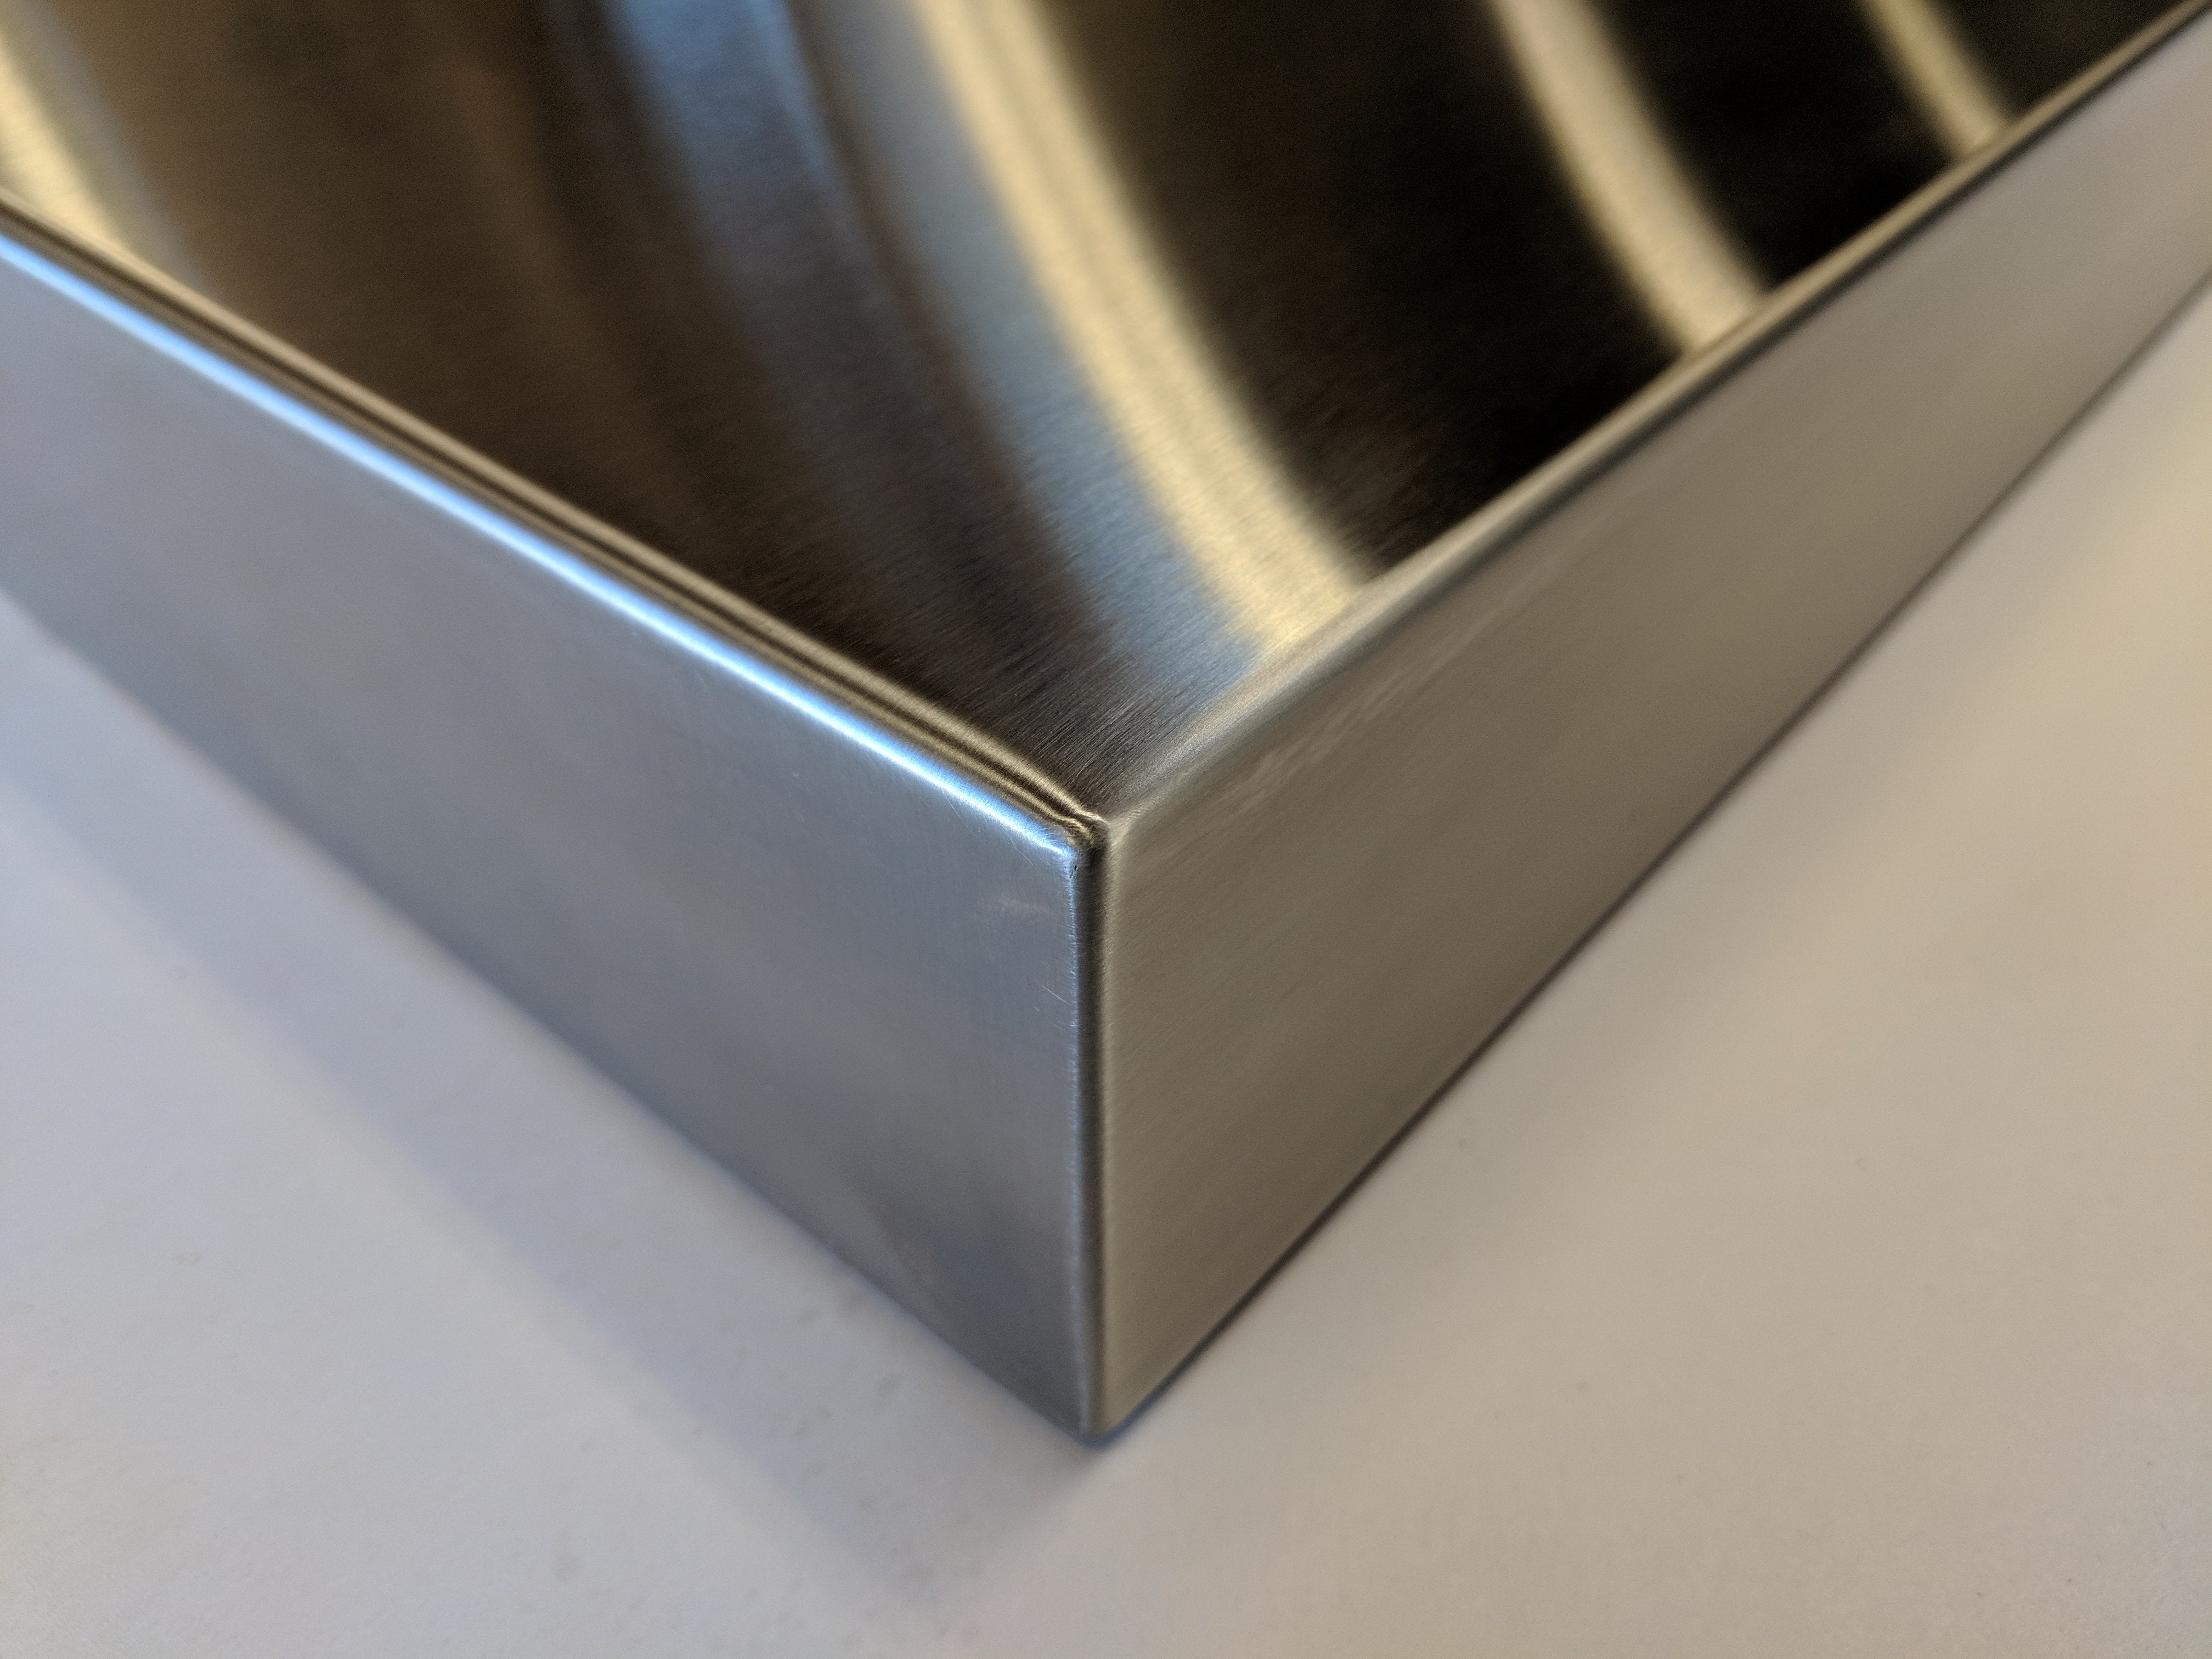 4 Storage Tips to Increase a Home's Value with Stainless Steel